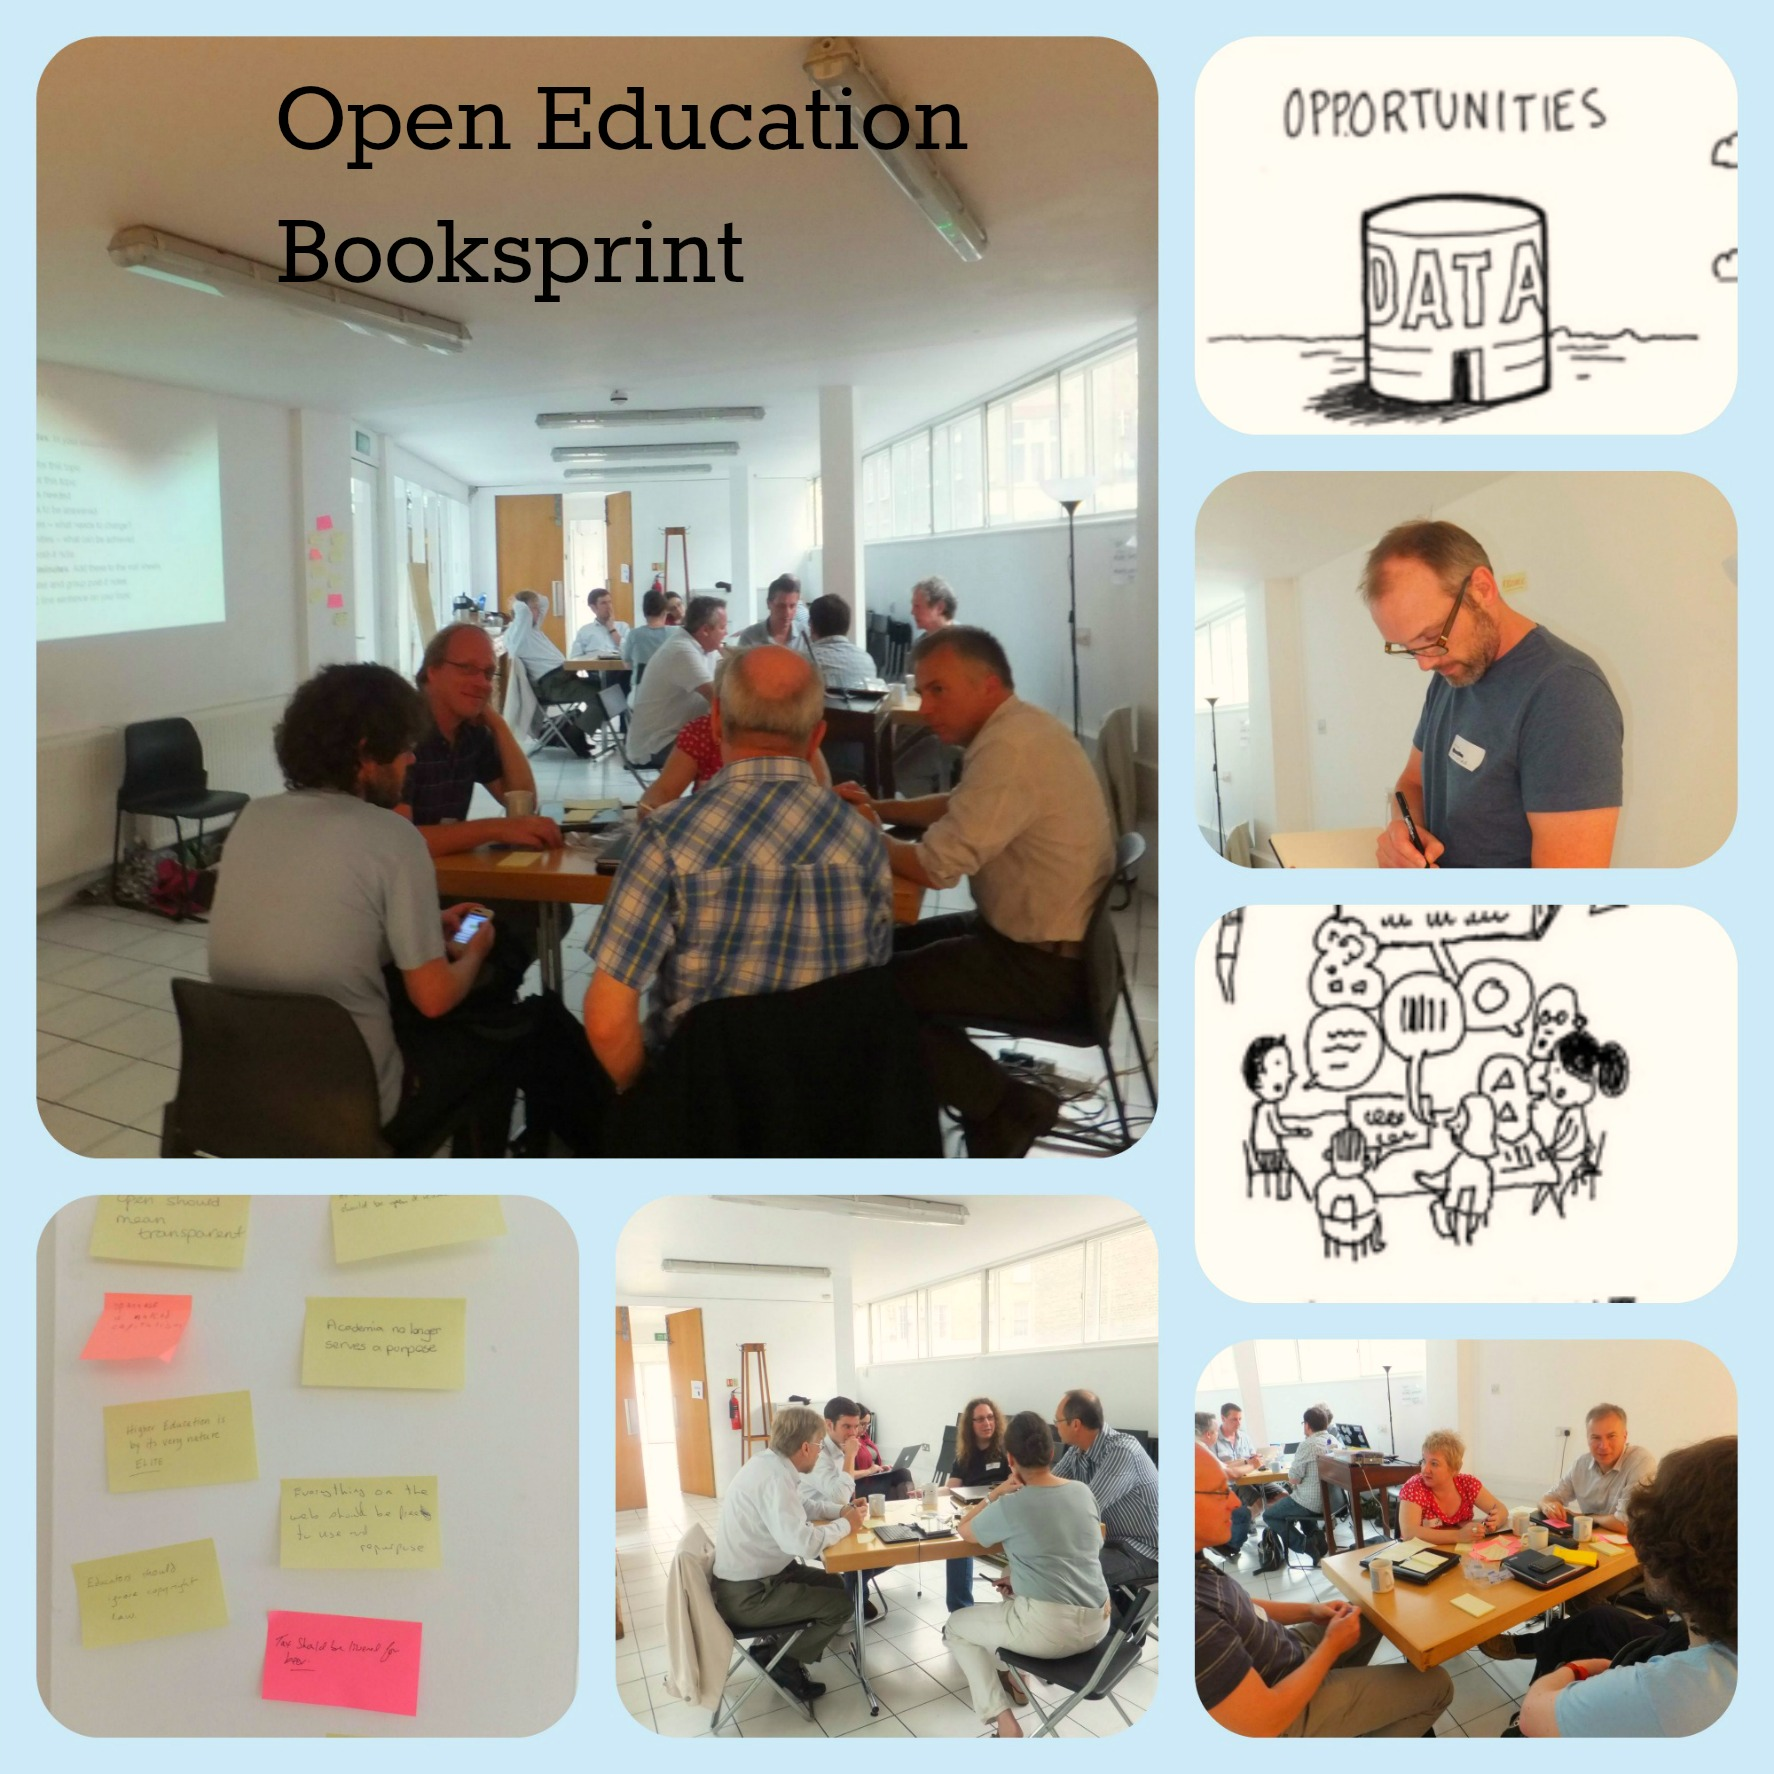 Figure 6: Images from the Open Education Handbook booksprint